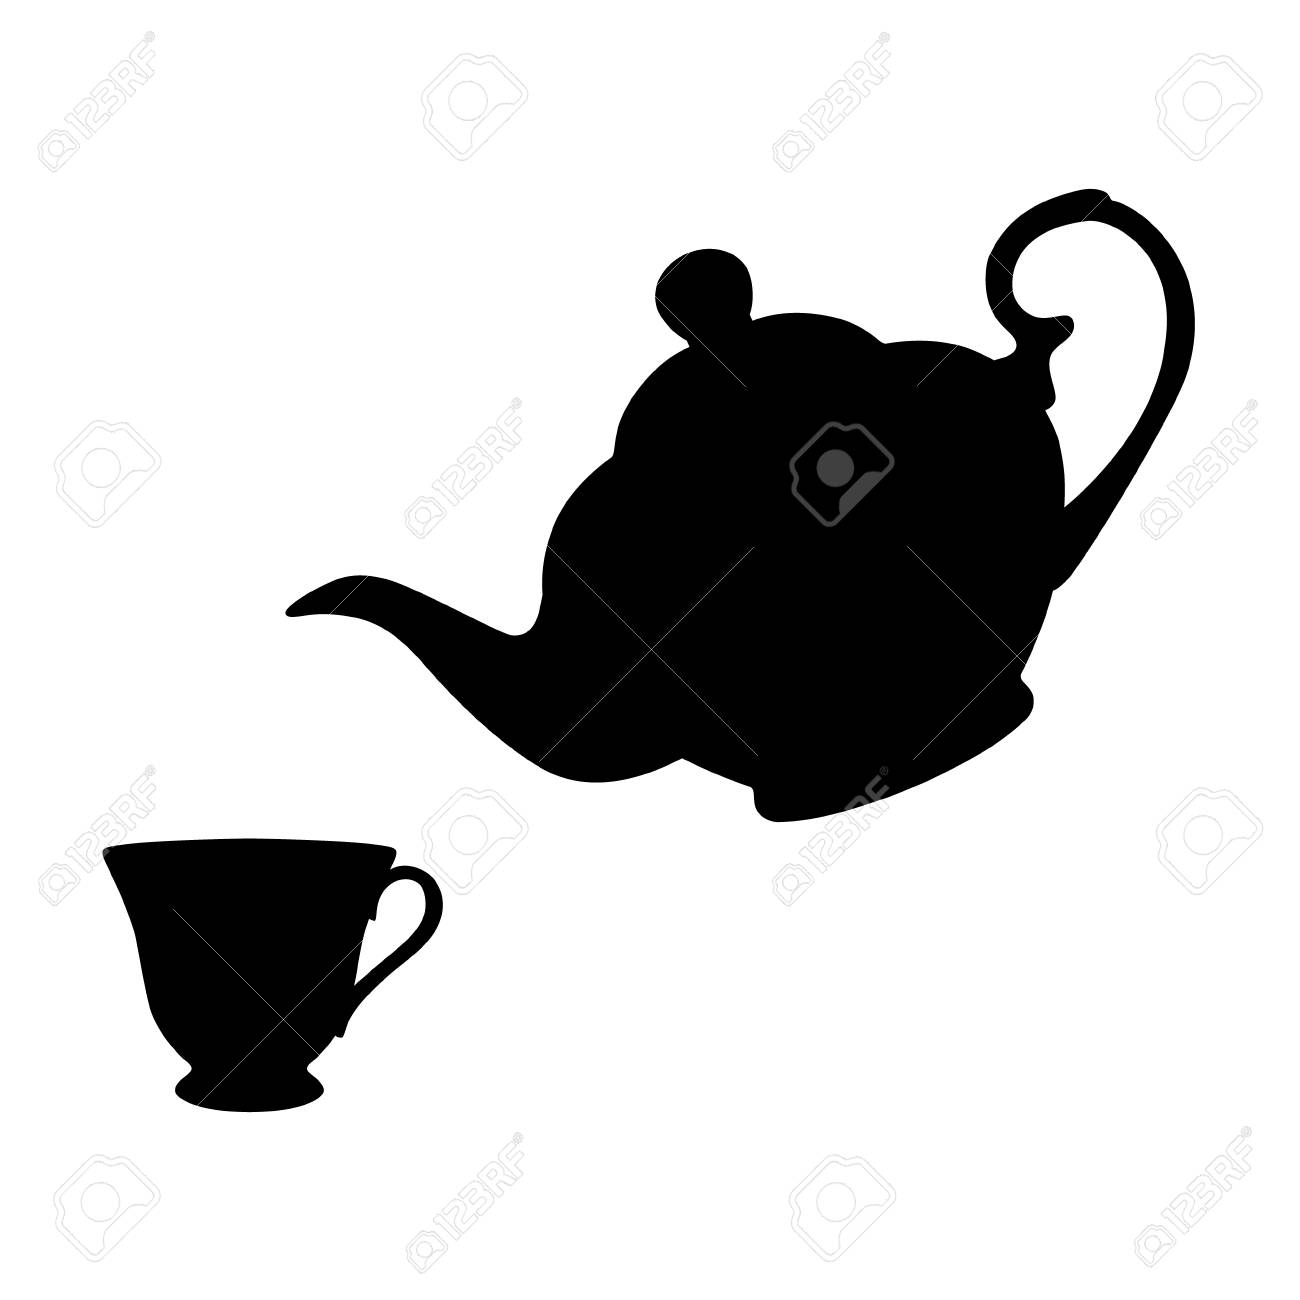 Teapot With Cup Vector Illustration Of Black Silhouette Teapot And Cup Of Tea